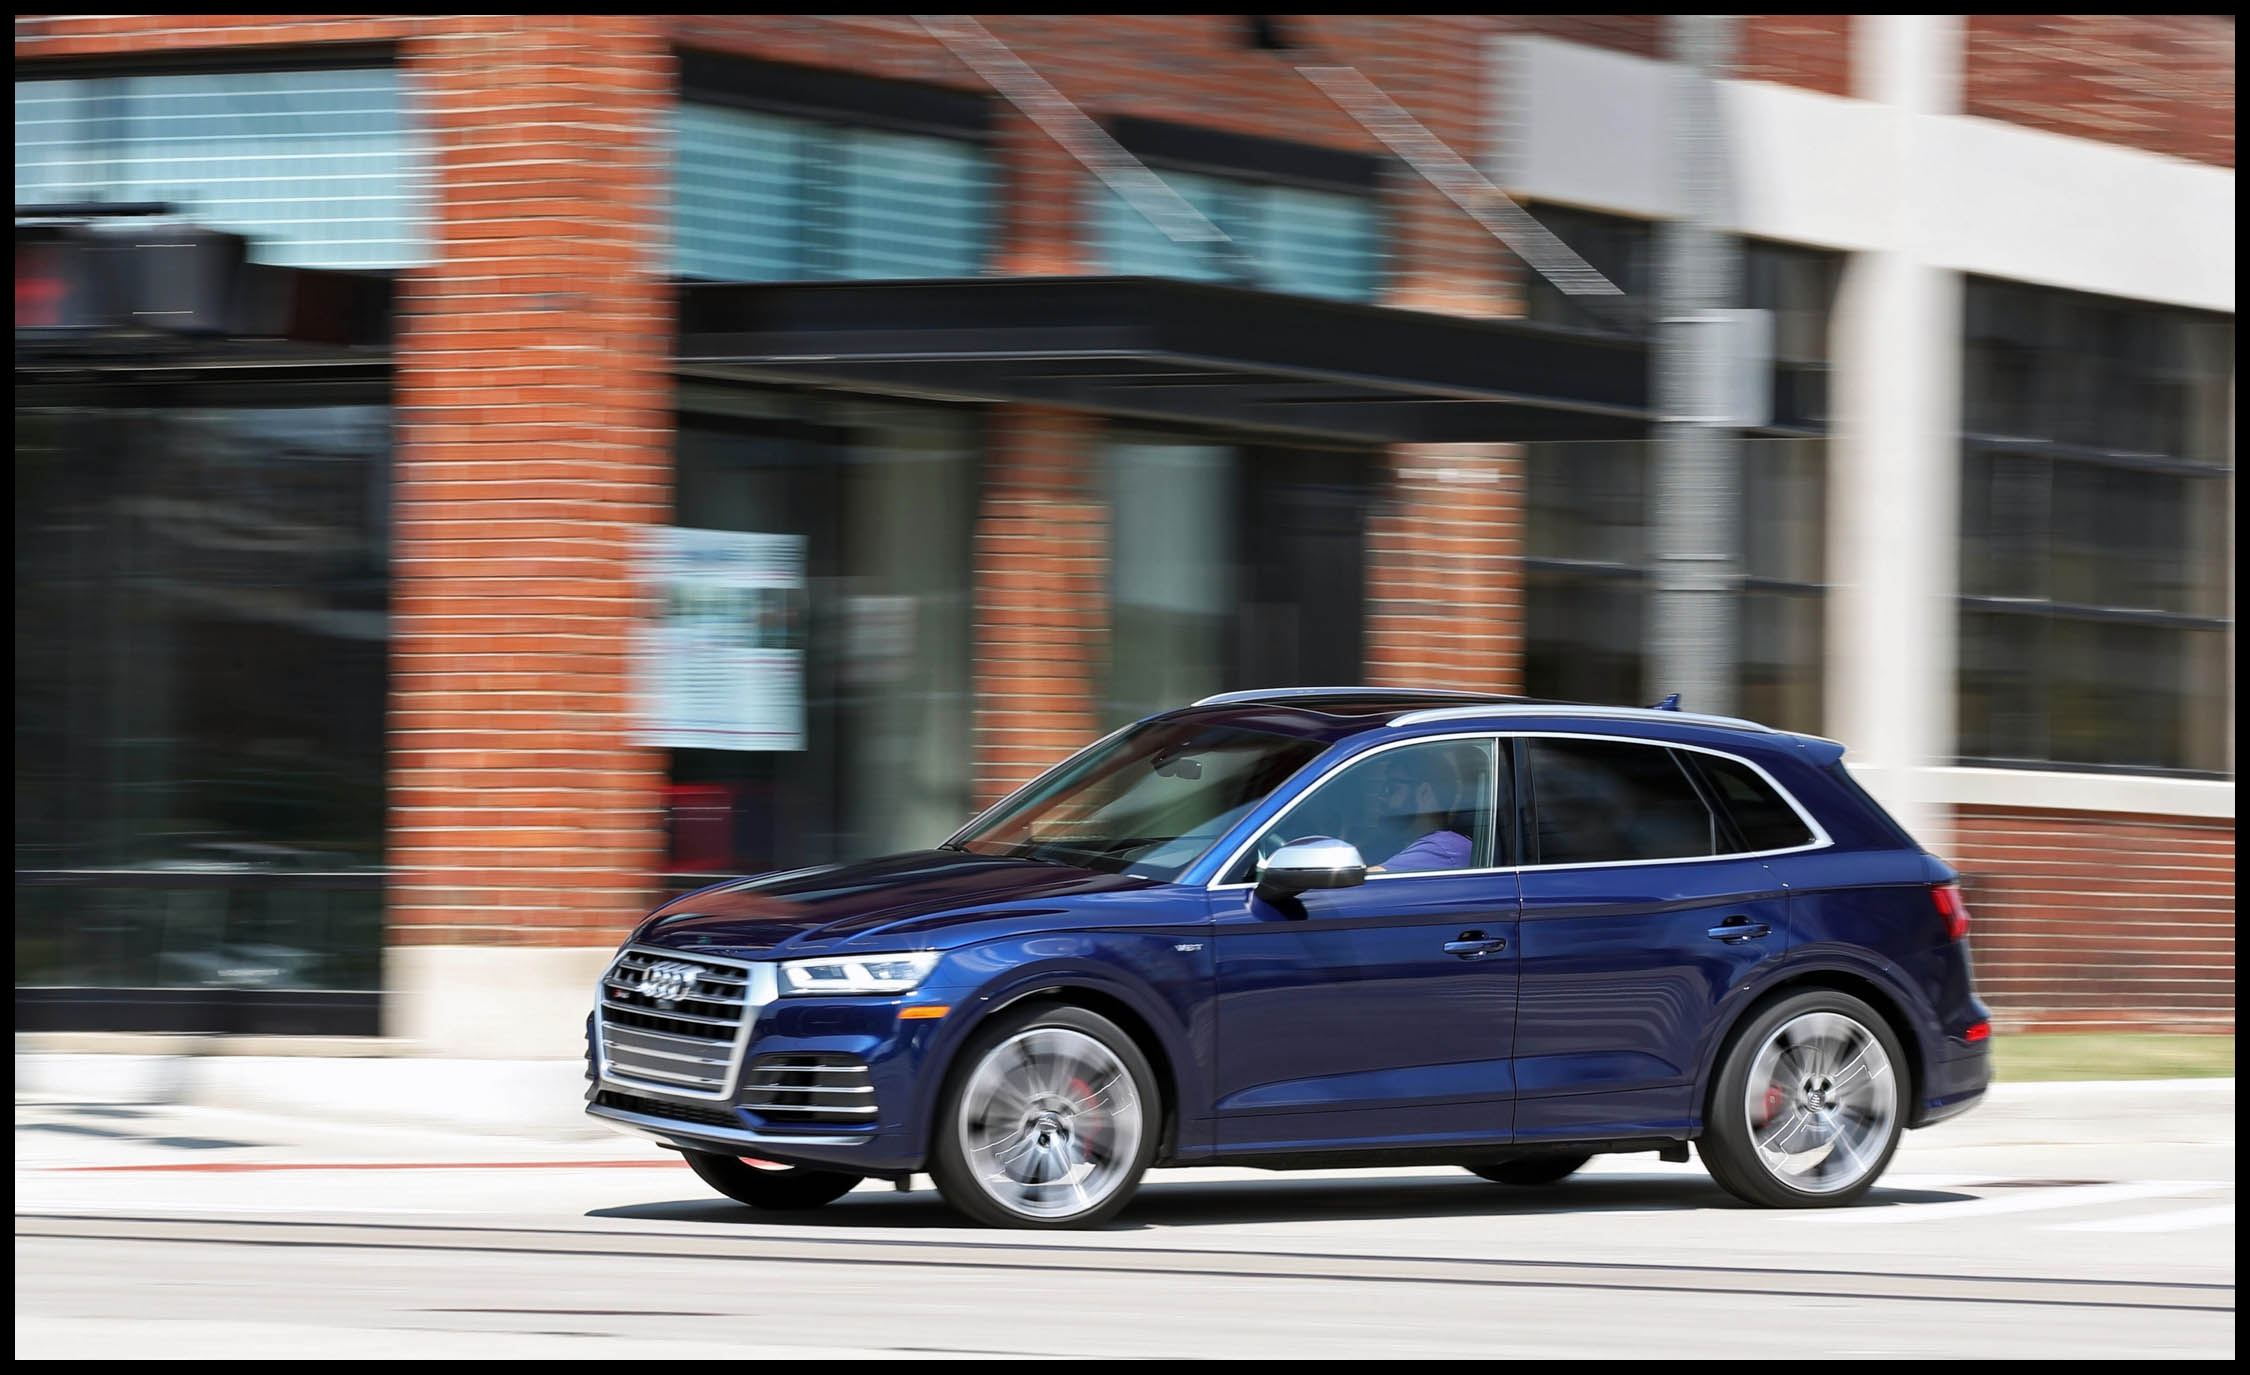 2018 audi sq5 safety and driver assistance review car and driver photo s original